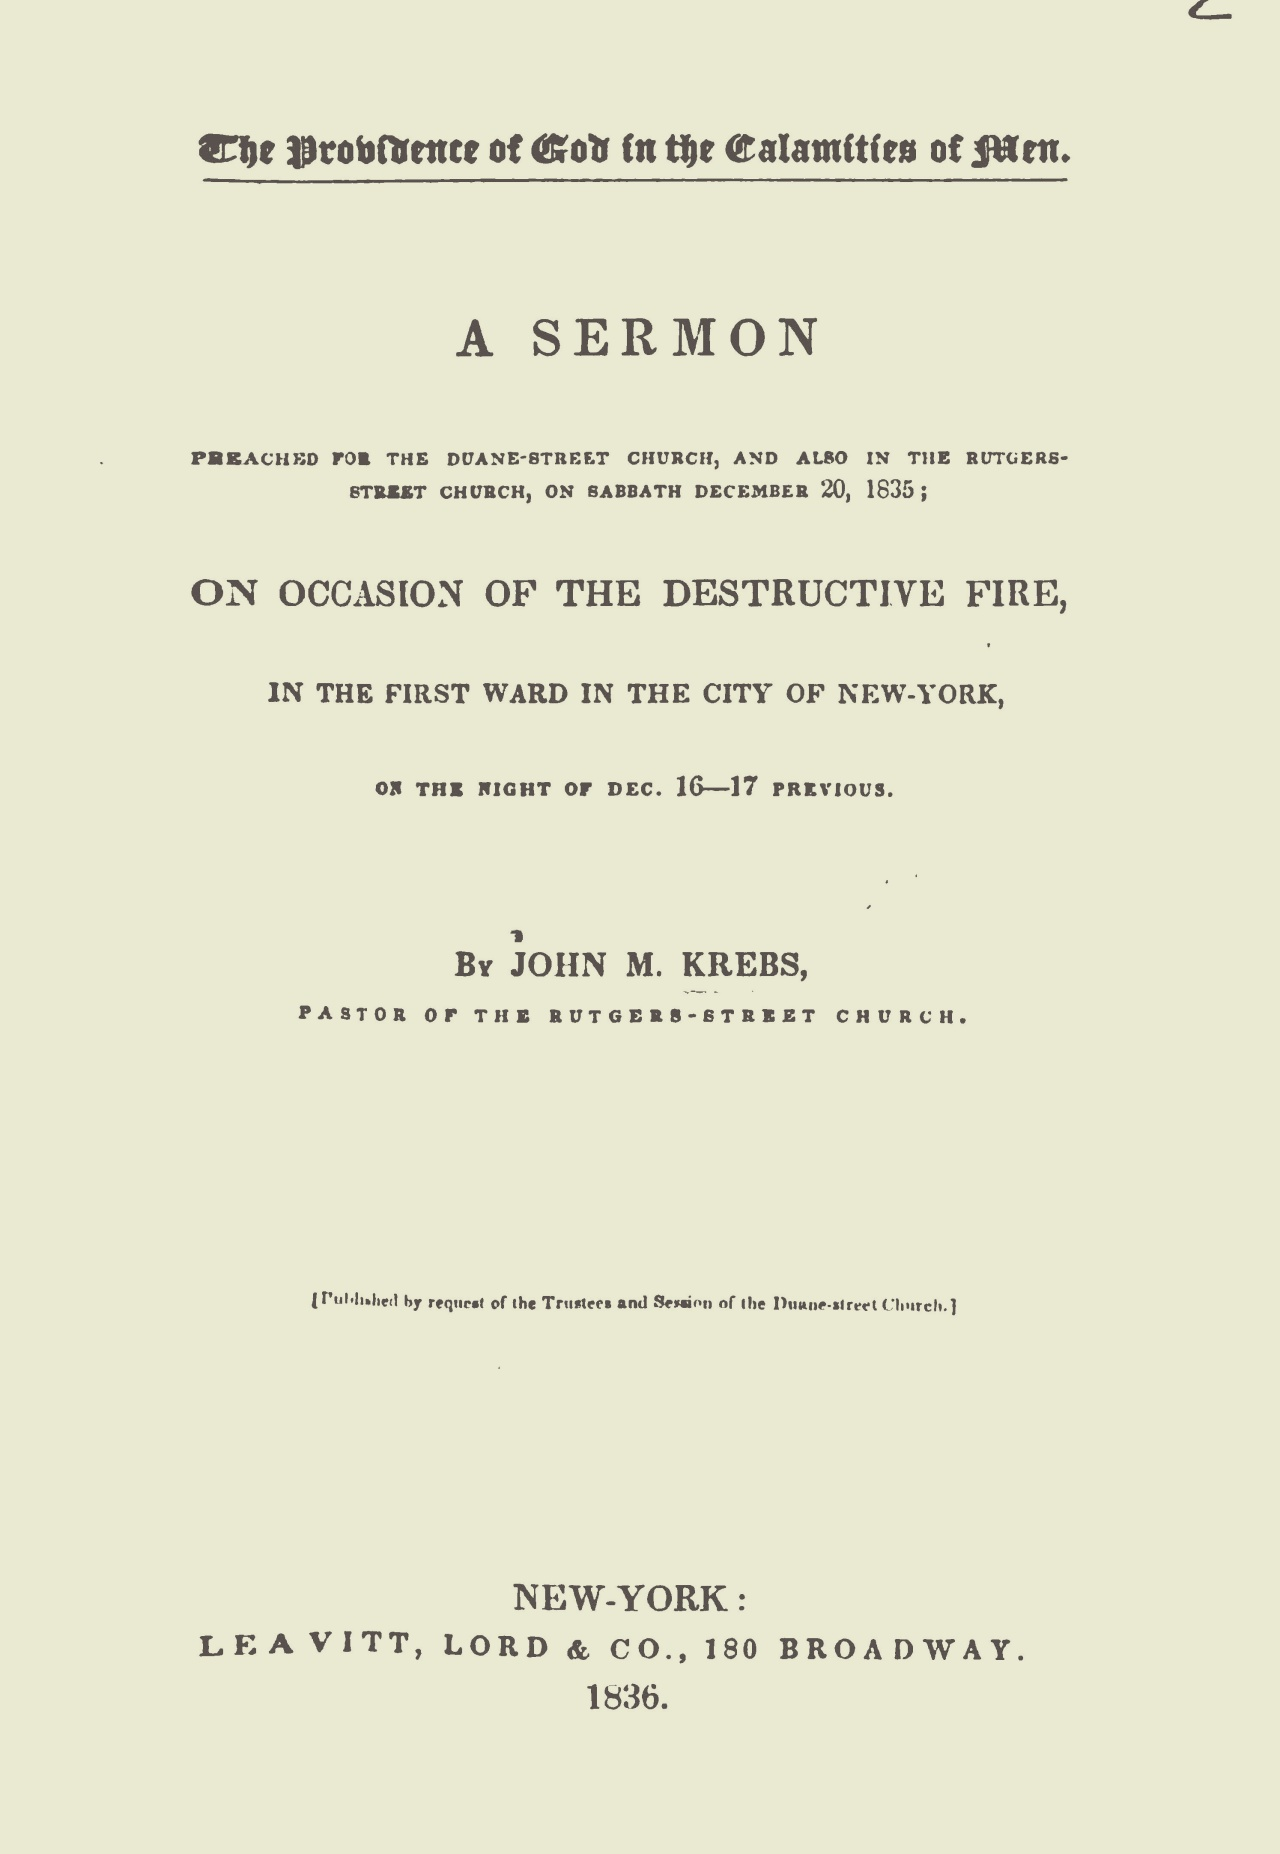 Krebs, John Michael, The Providence of God in the Calamities of Men Title Page.jpg